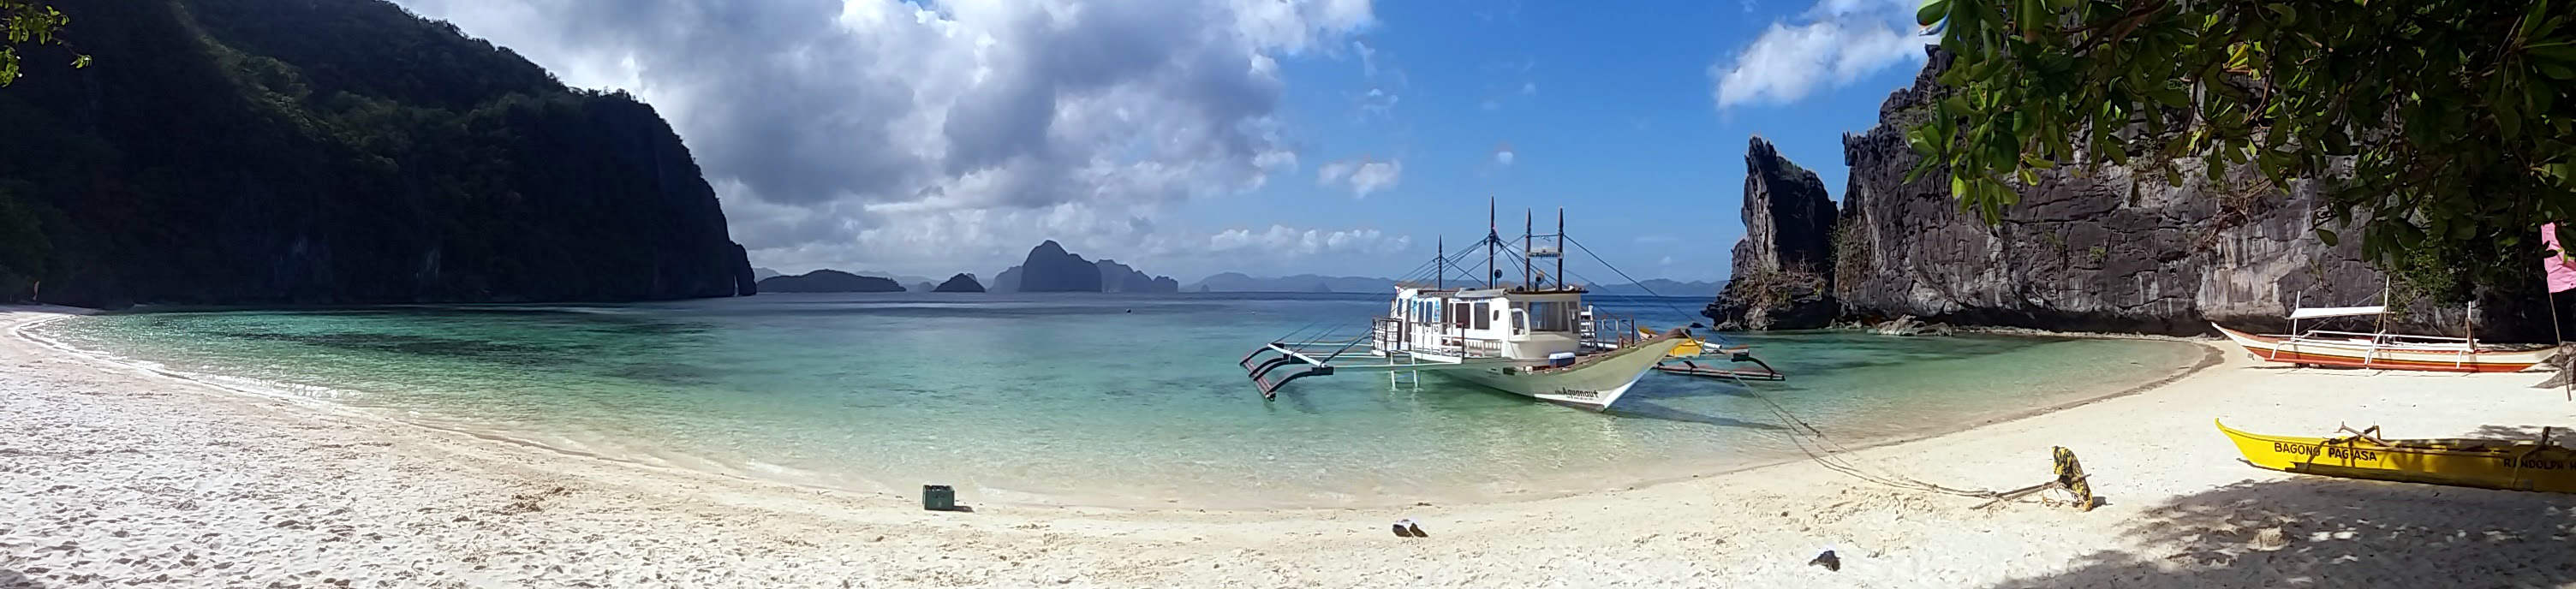 How to get there, El Nido, Philippines